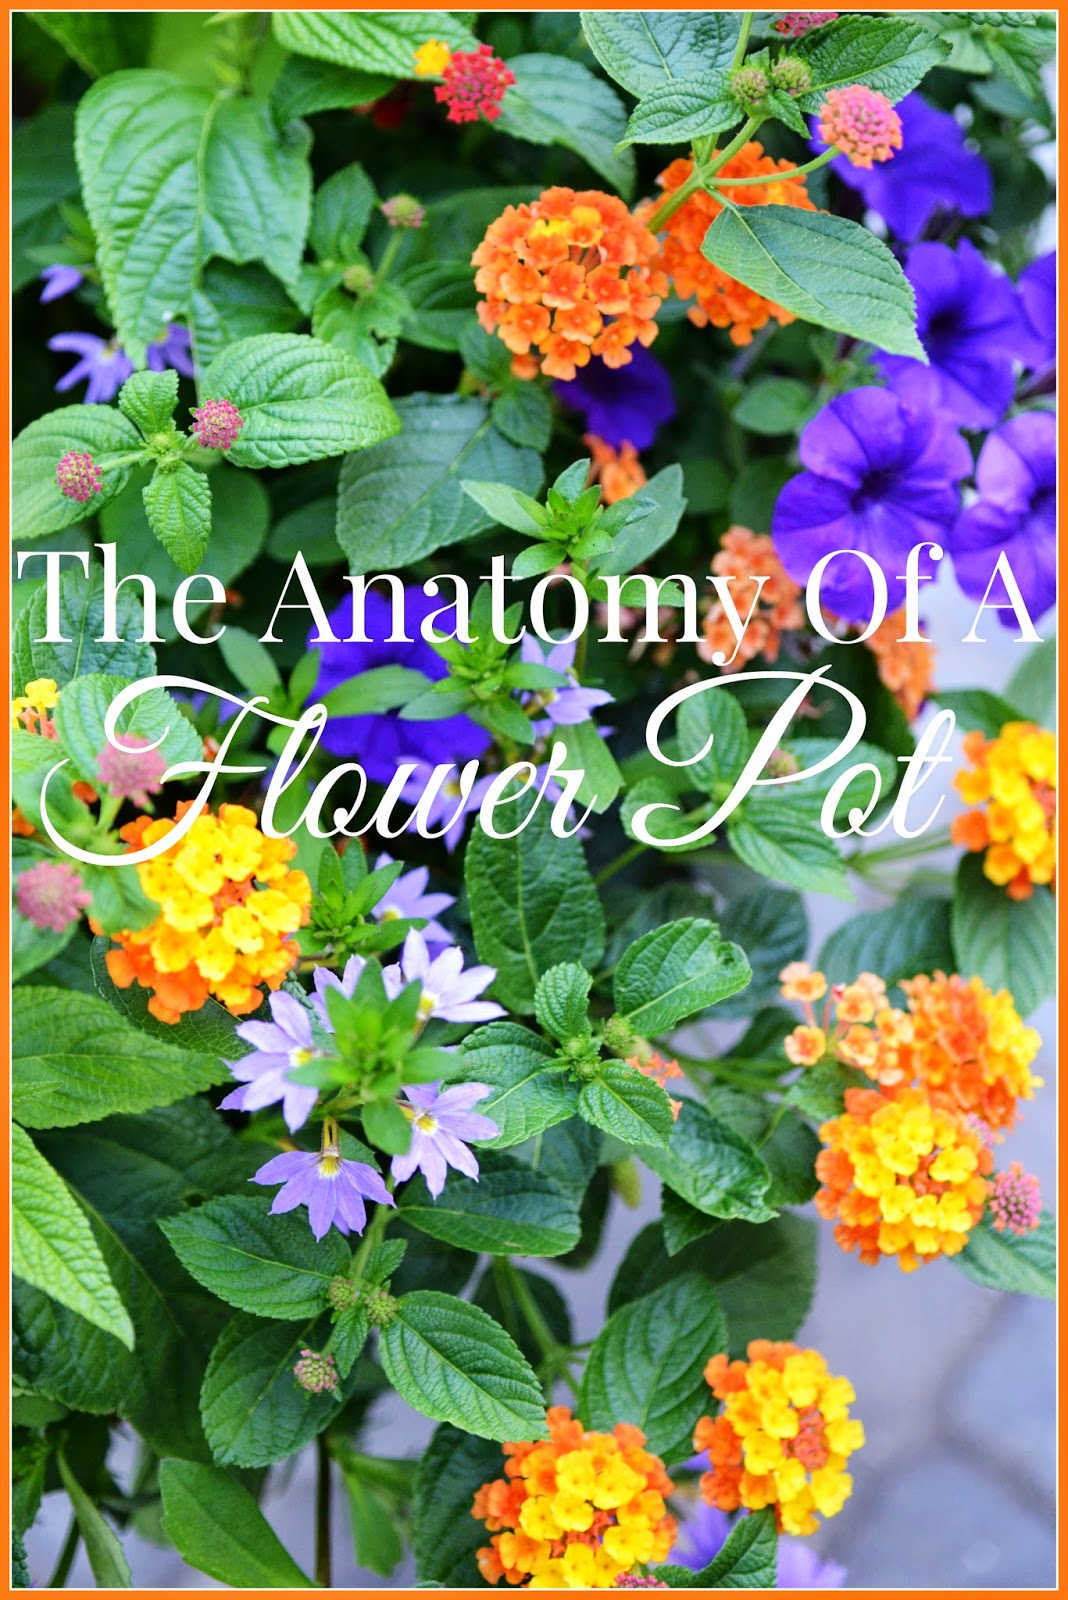 THE ANATOMY OF A FLOWER POT - StoneGable